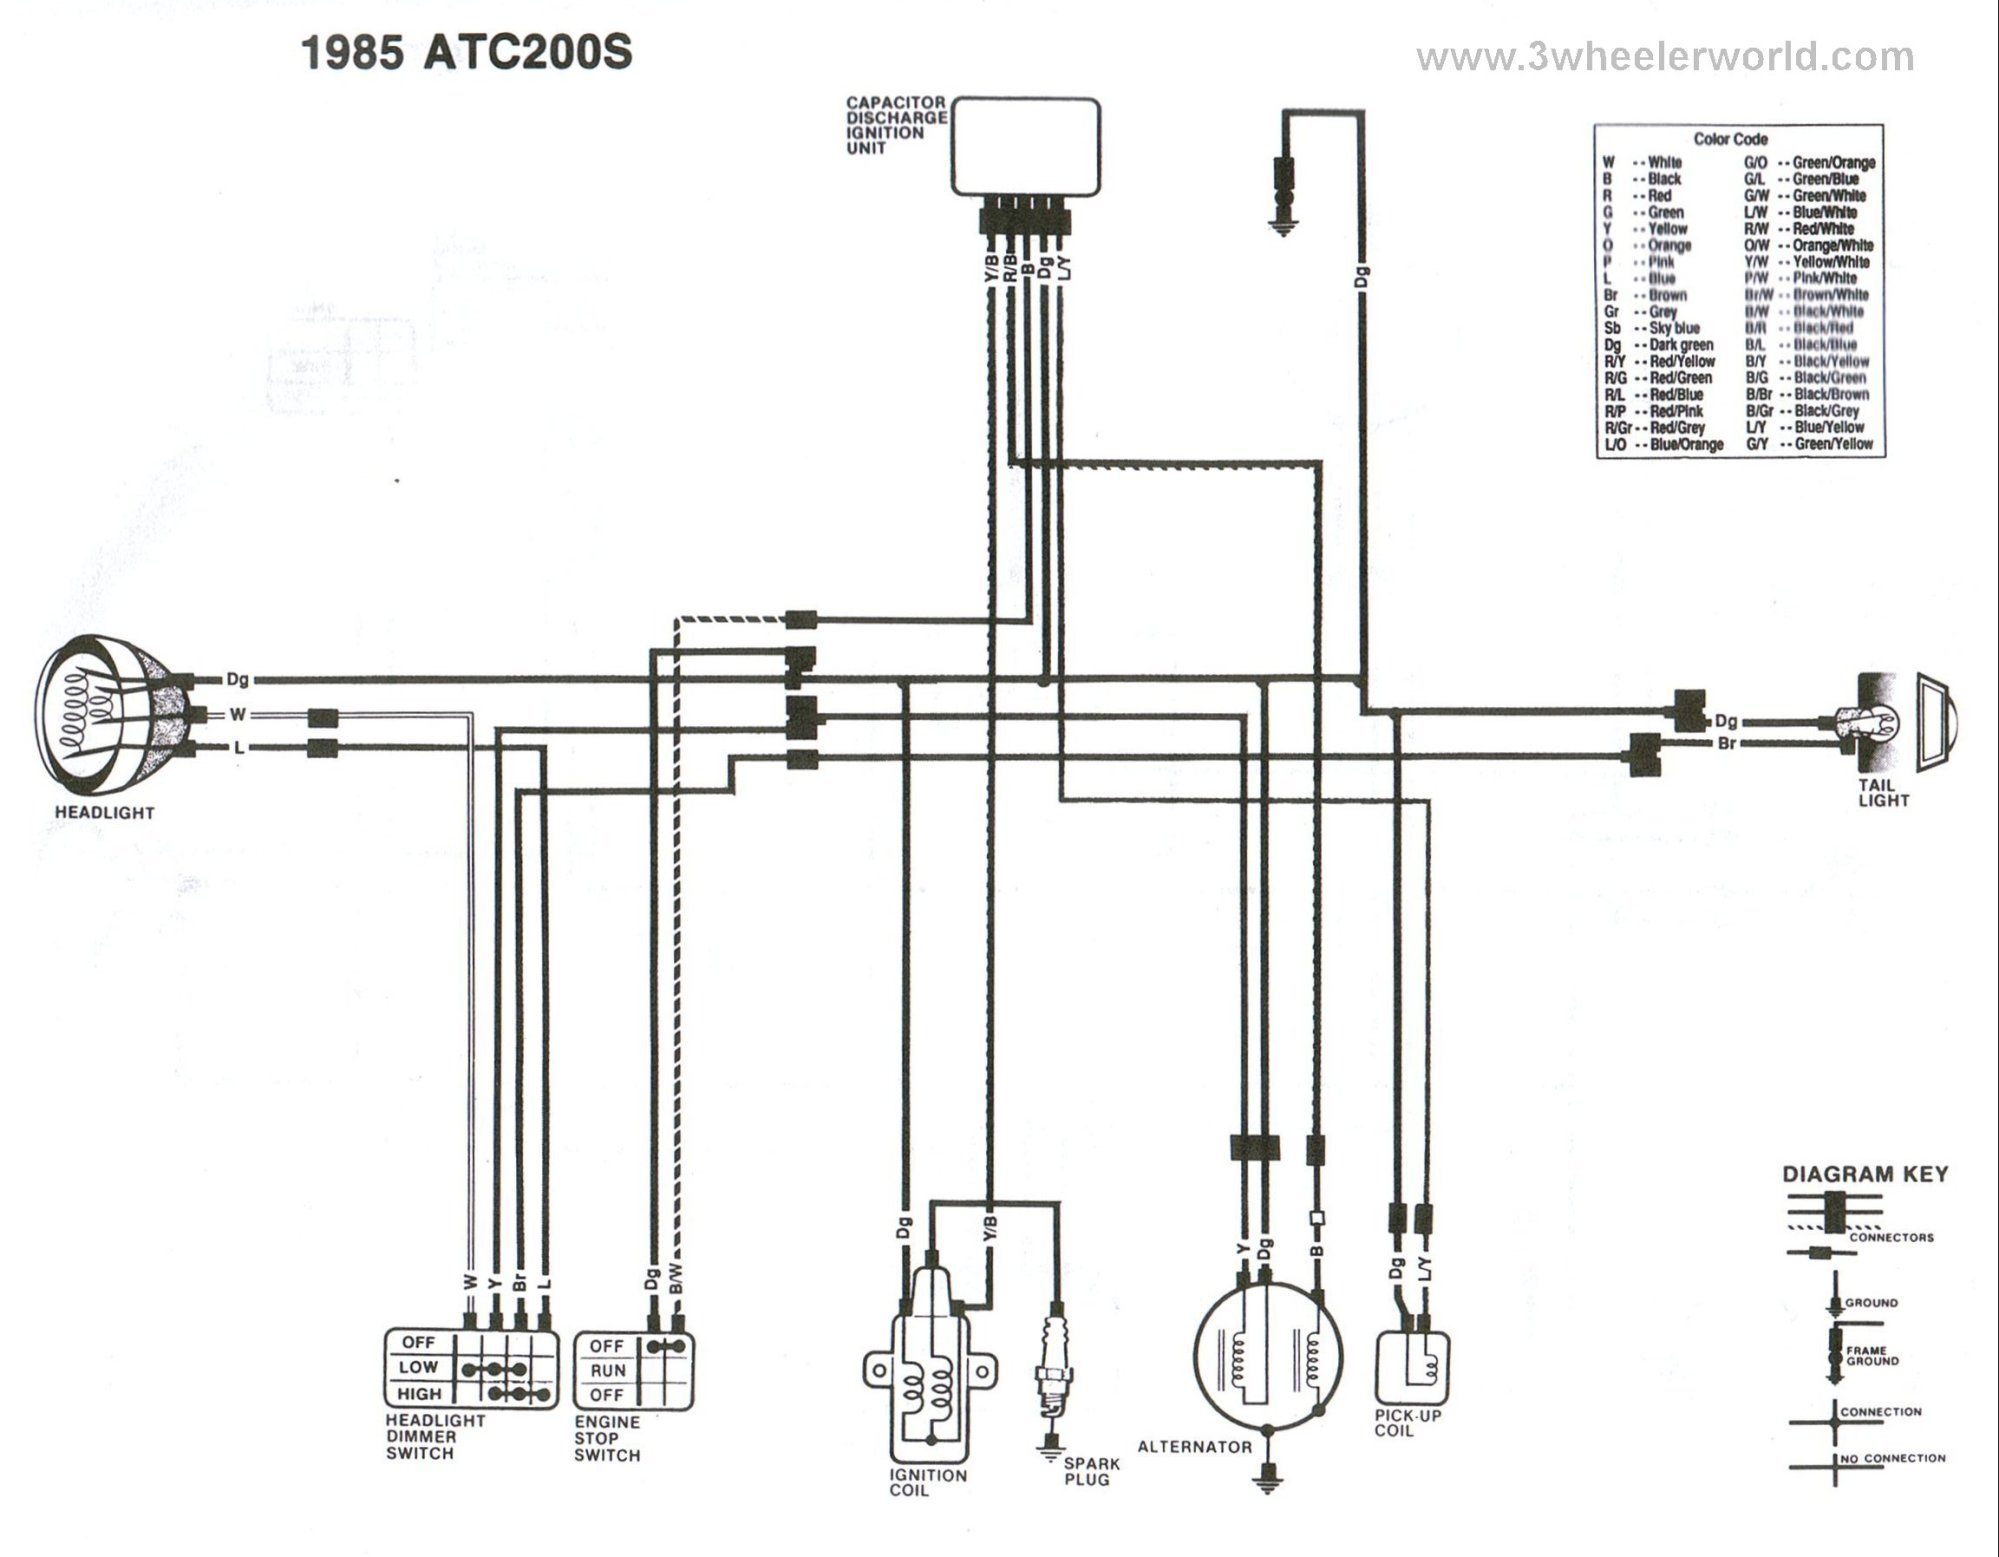 hight resolution of 3 wheeler world tech help honda wiring diagrams1985 honda 200s atc wiring diagram 2